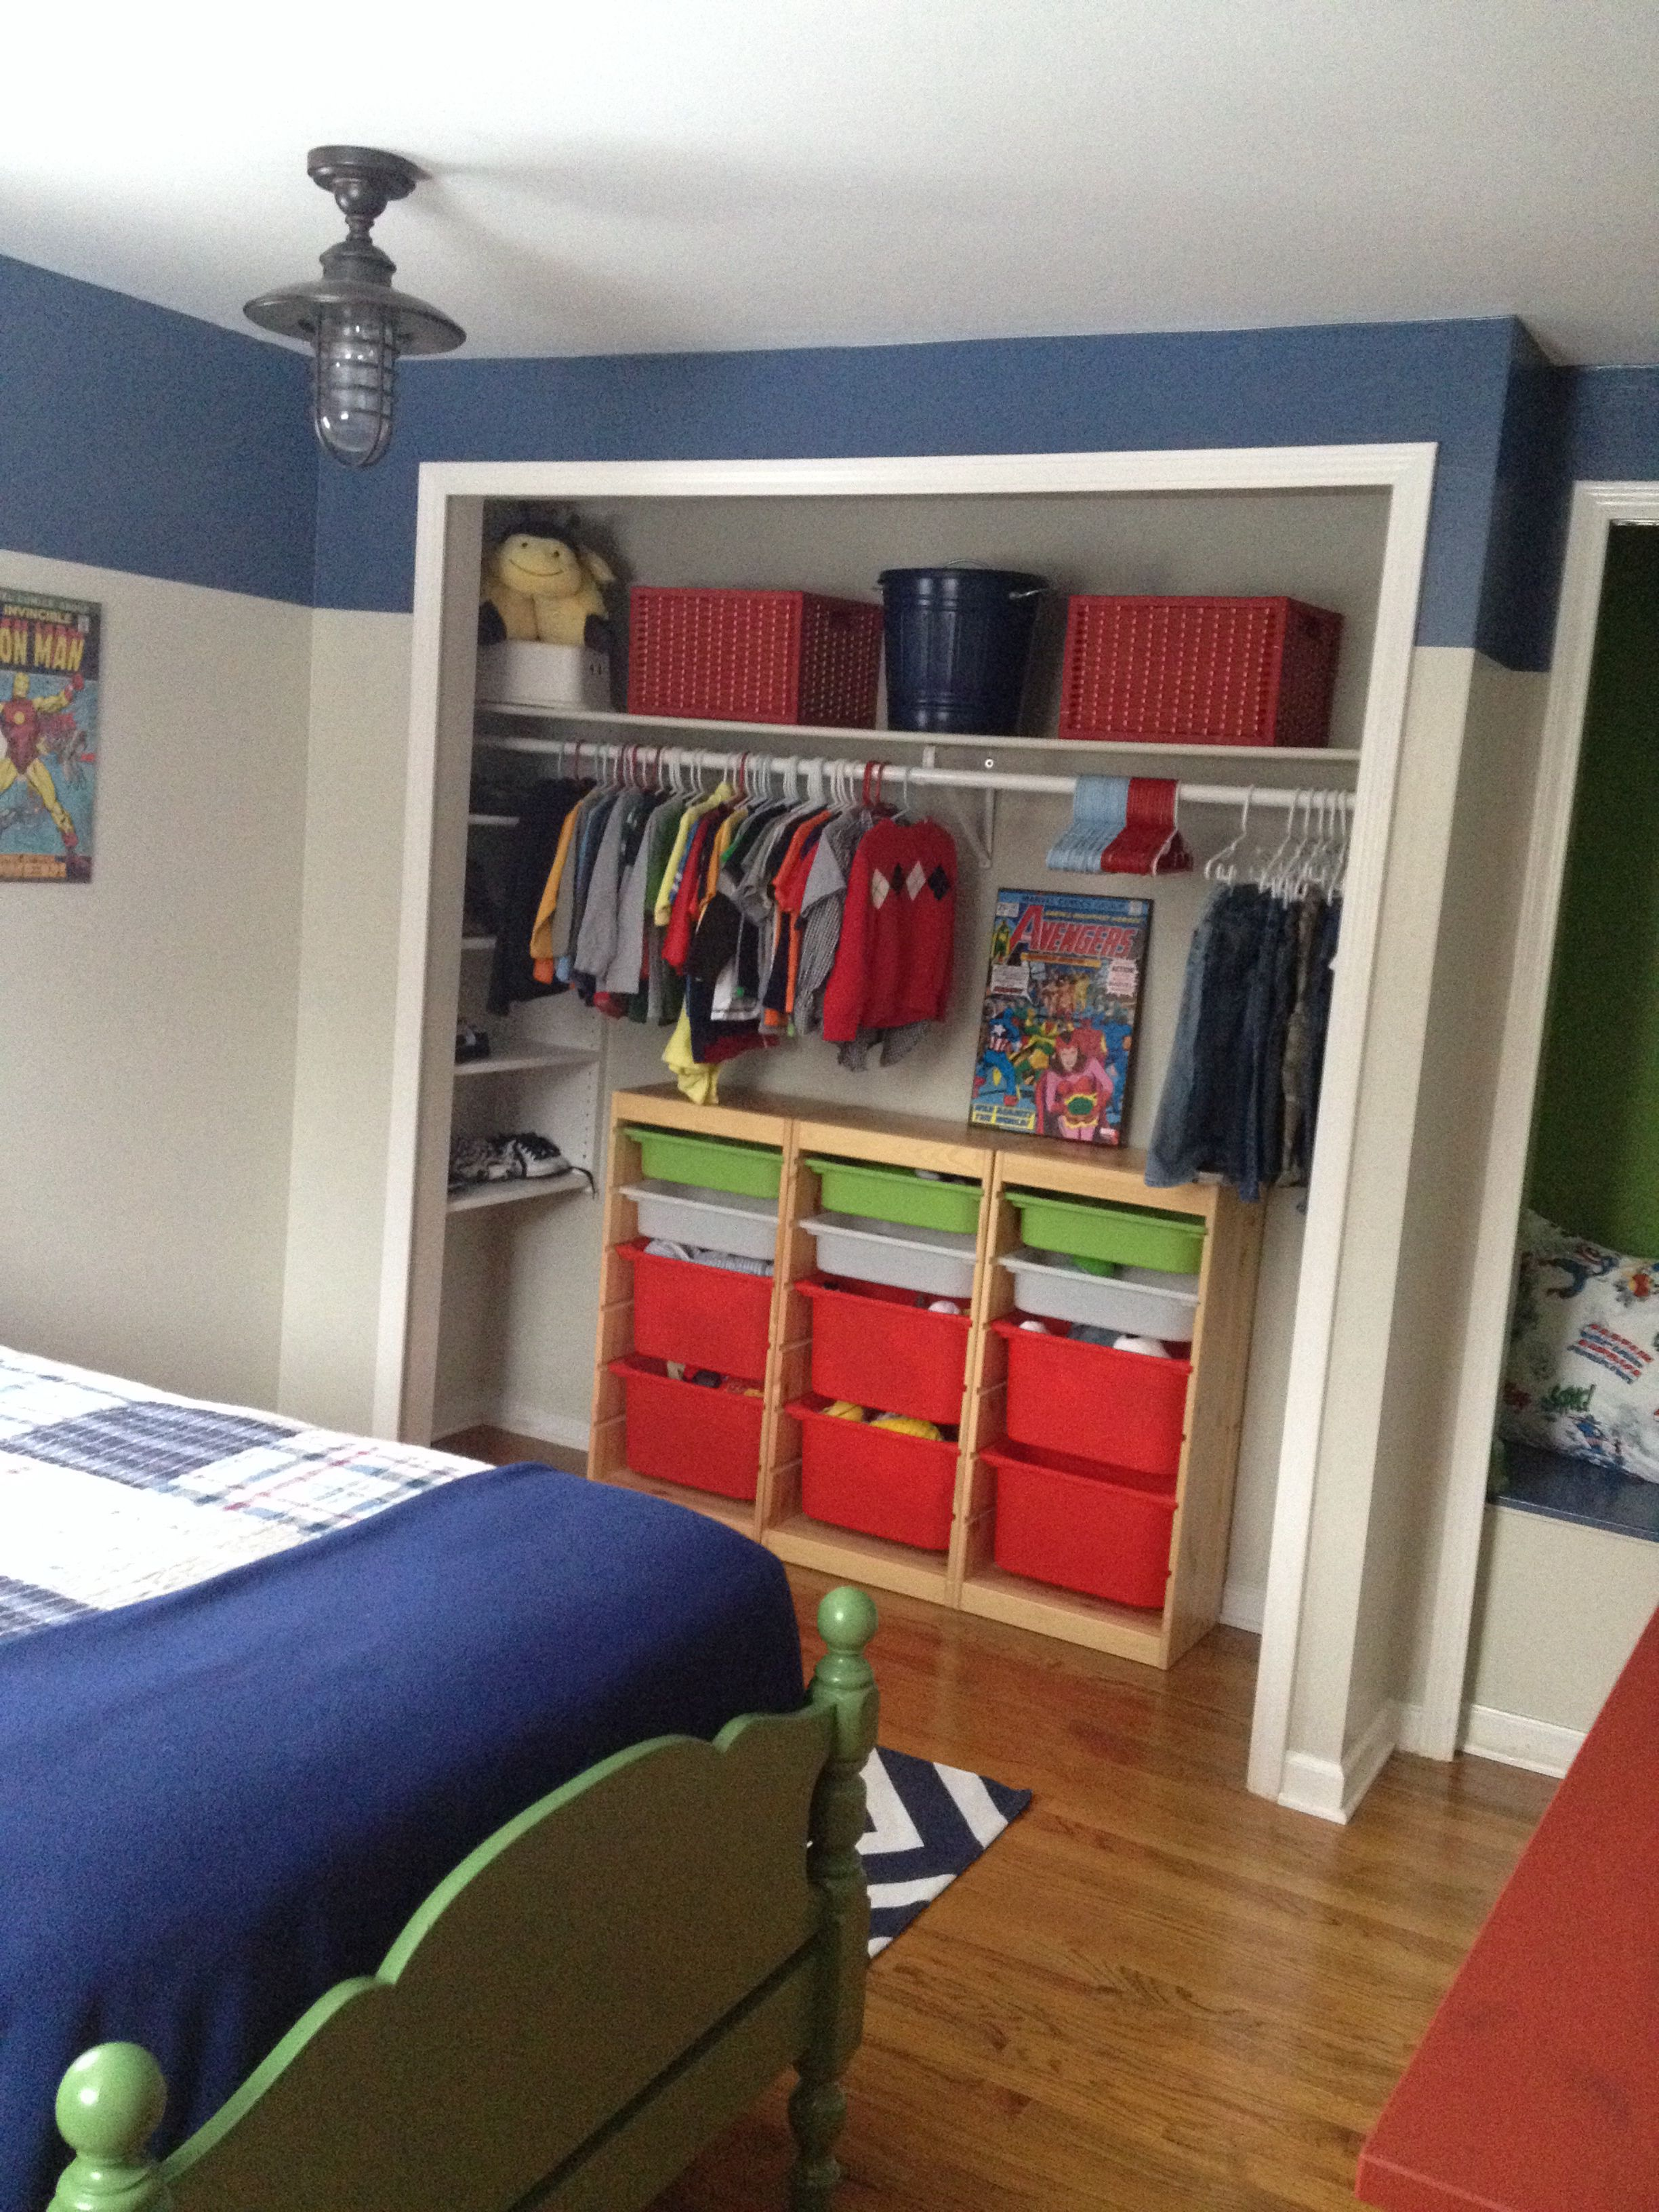 Little Boy Room Ideas: Little Boy's Bedroom Closet. When You're Clean And